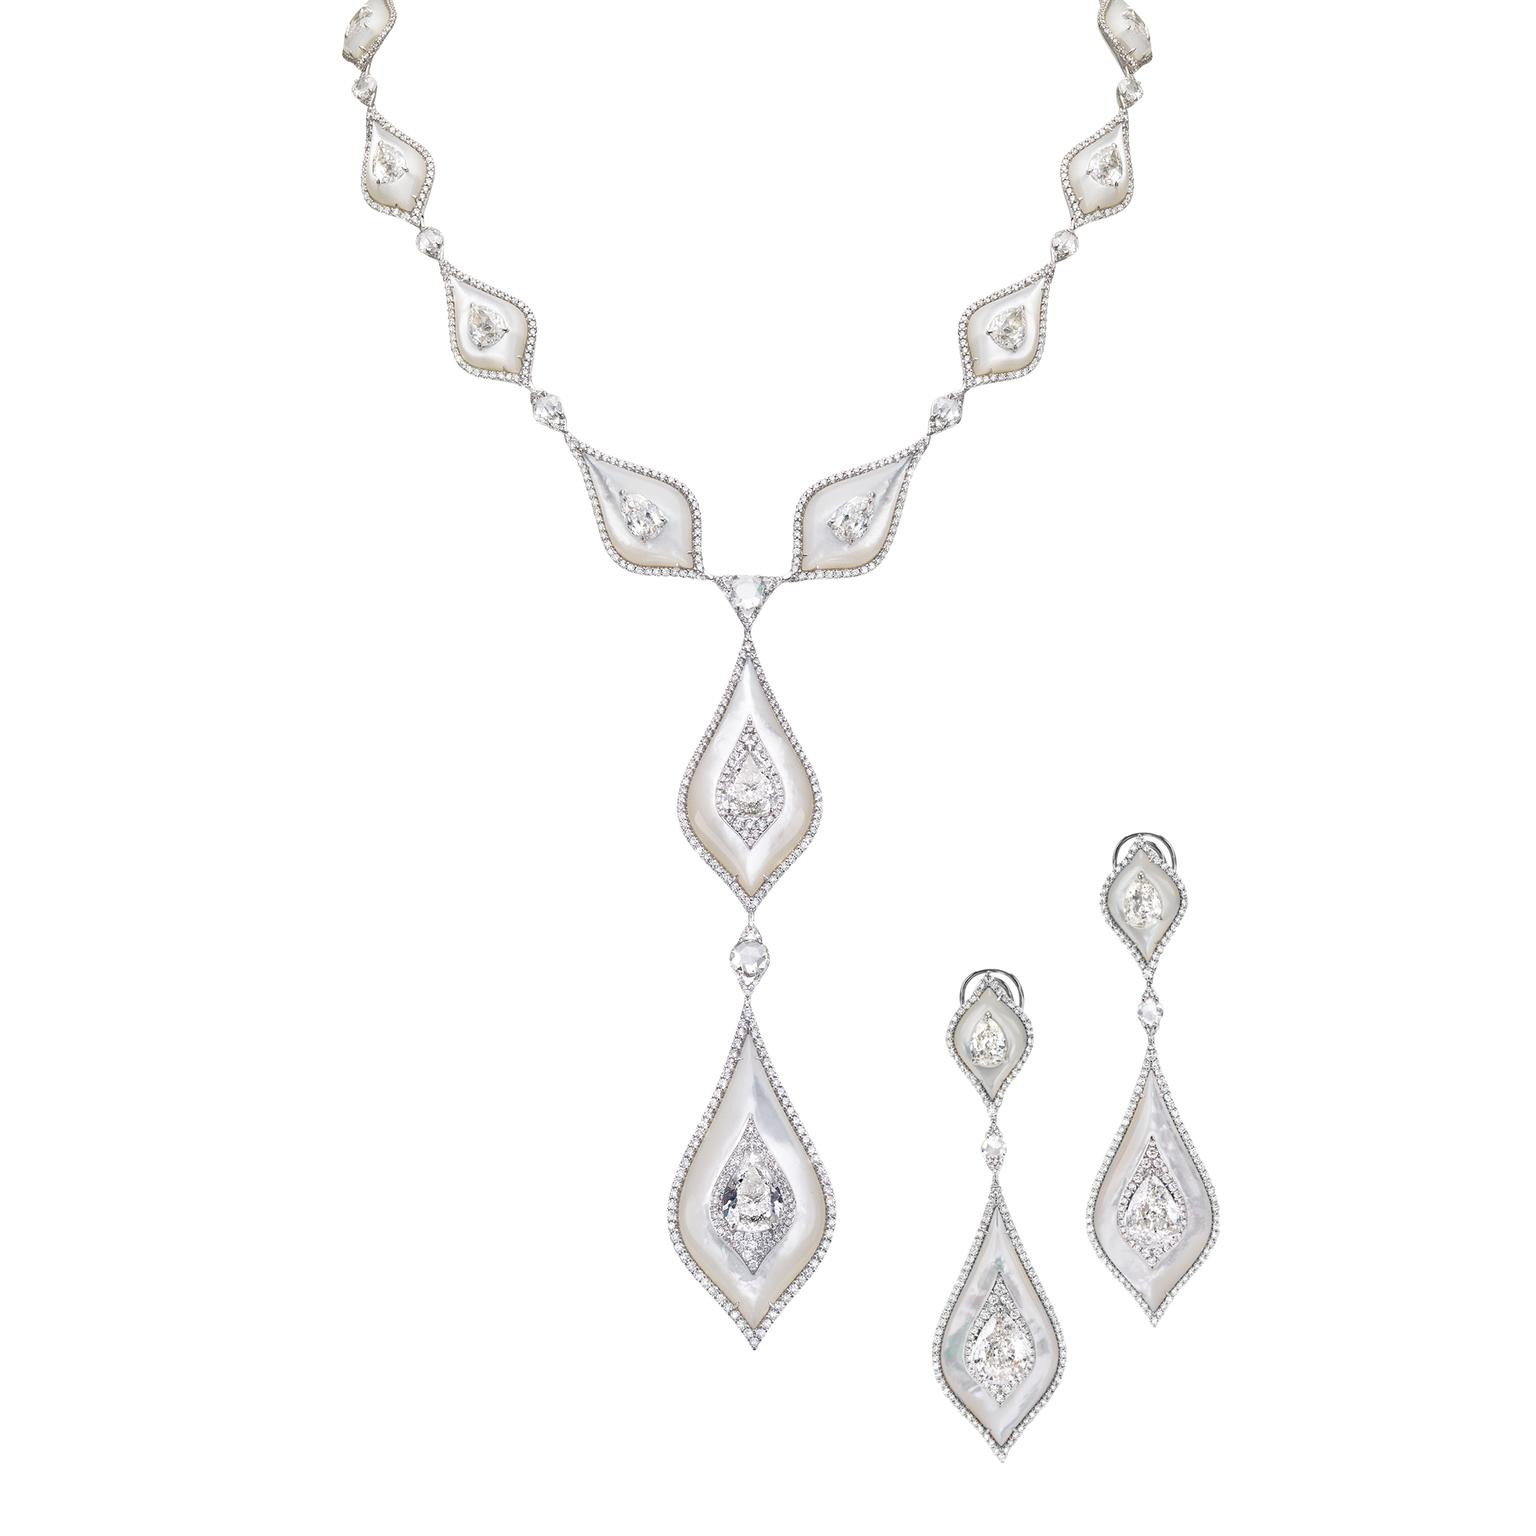 Boghossian diamond and pearl necklace and earrings